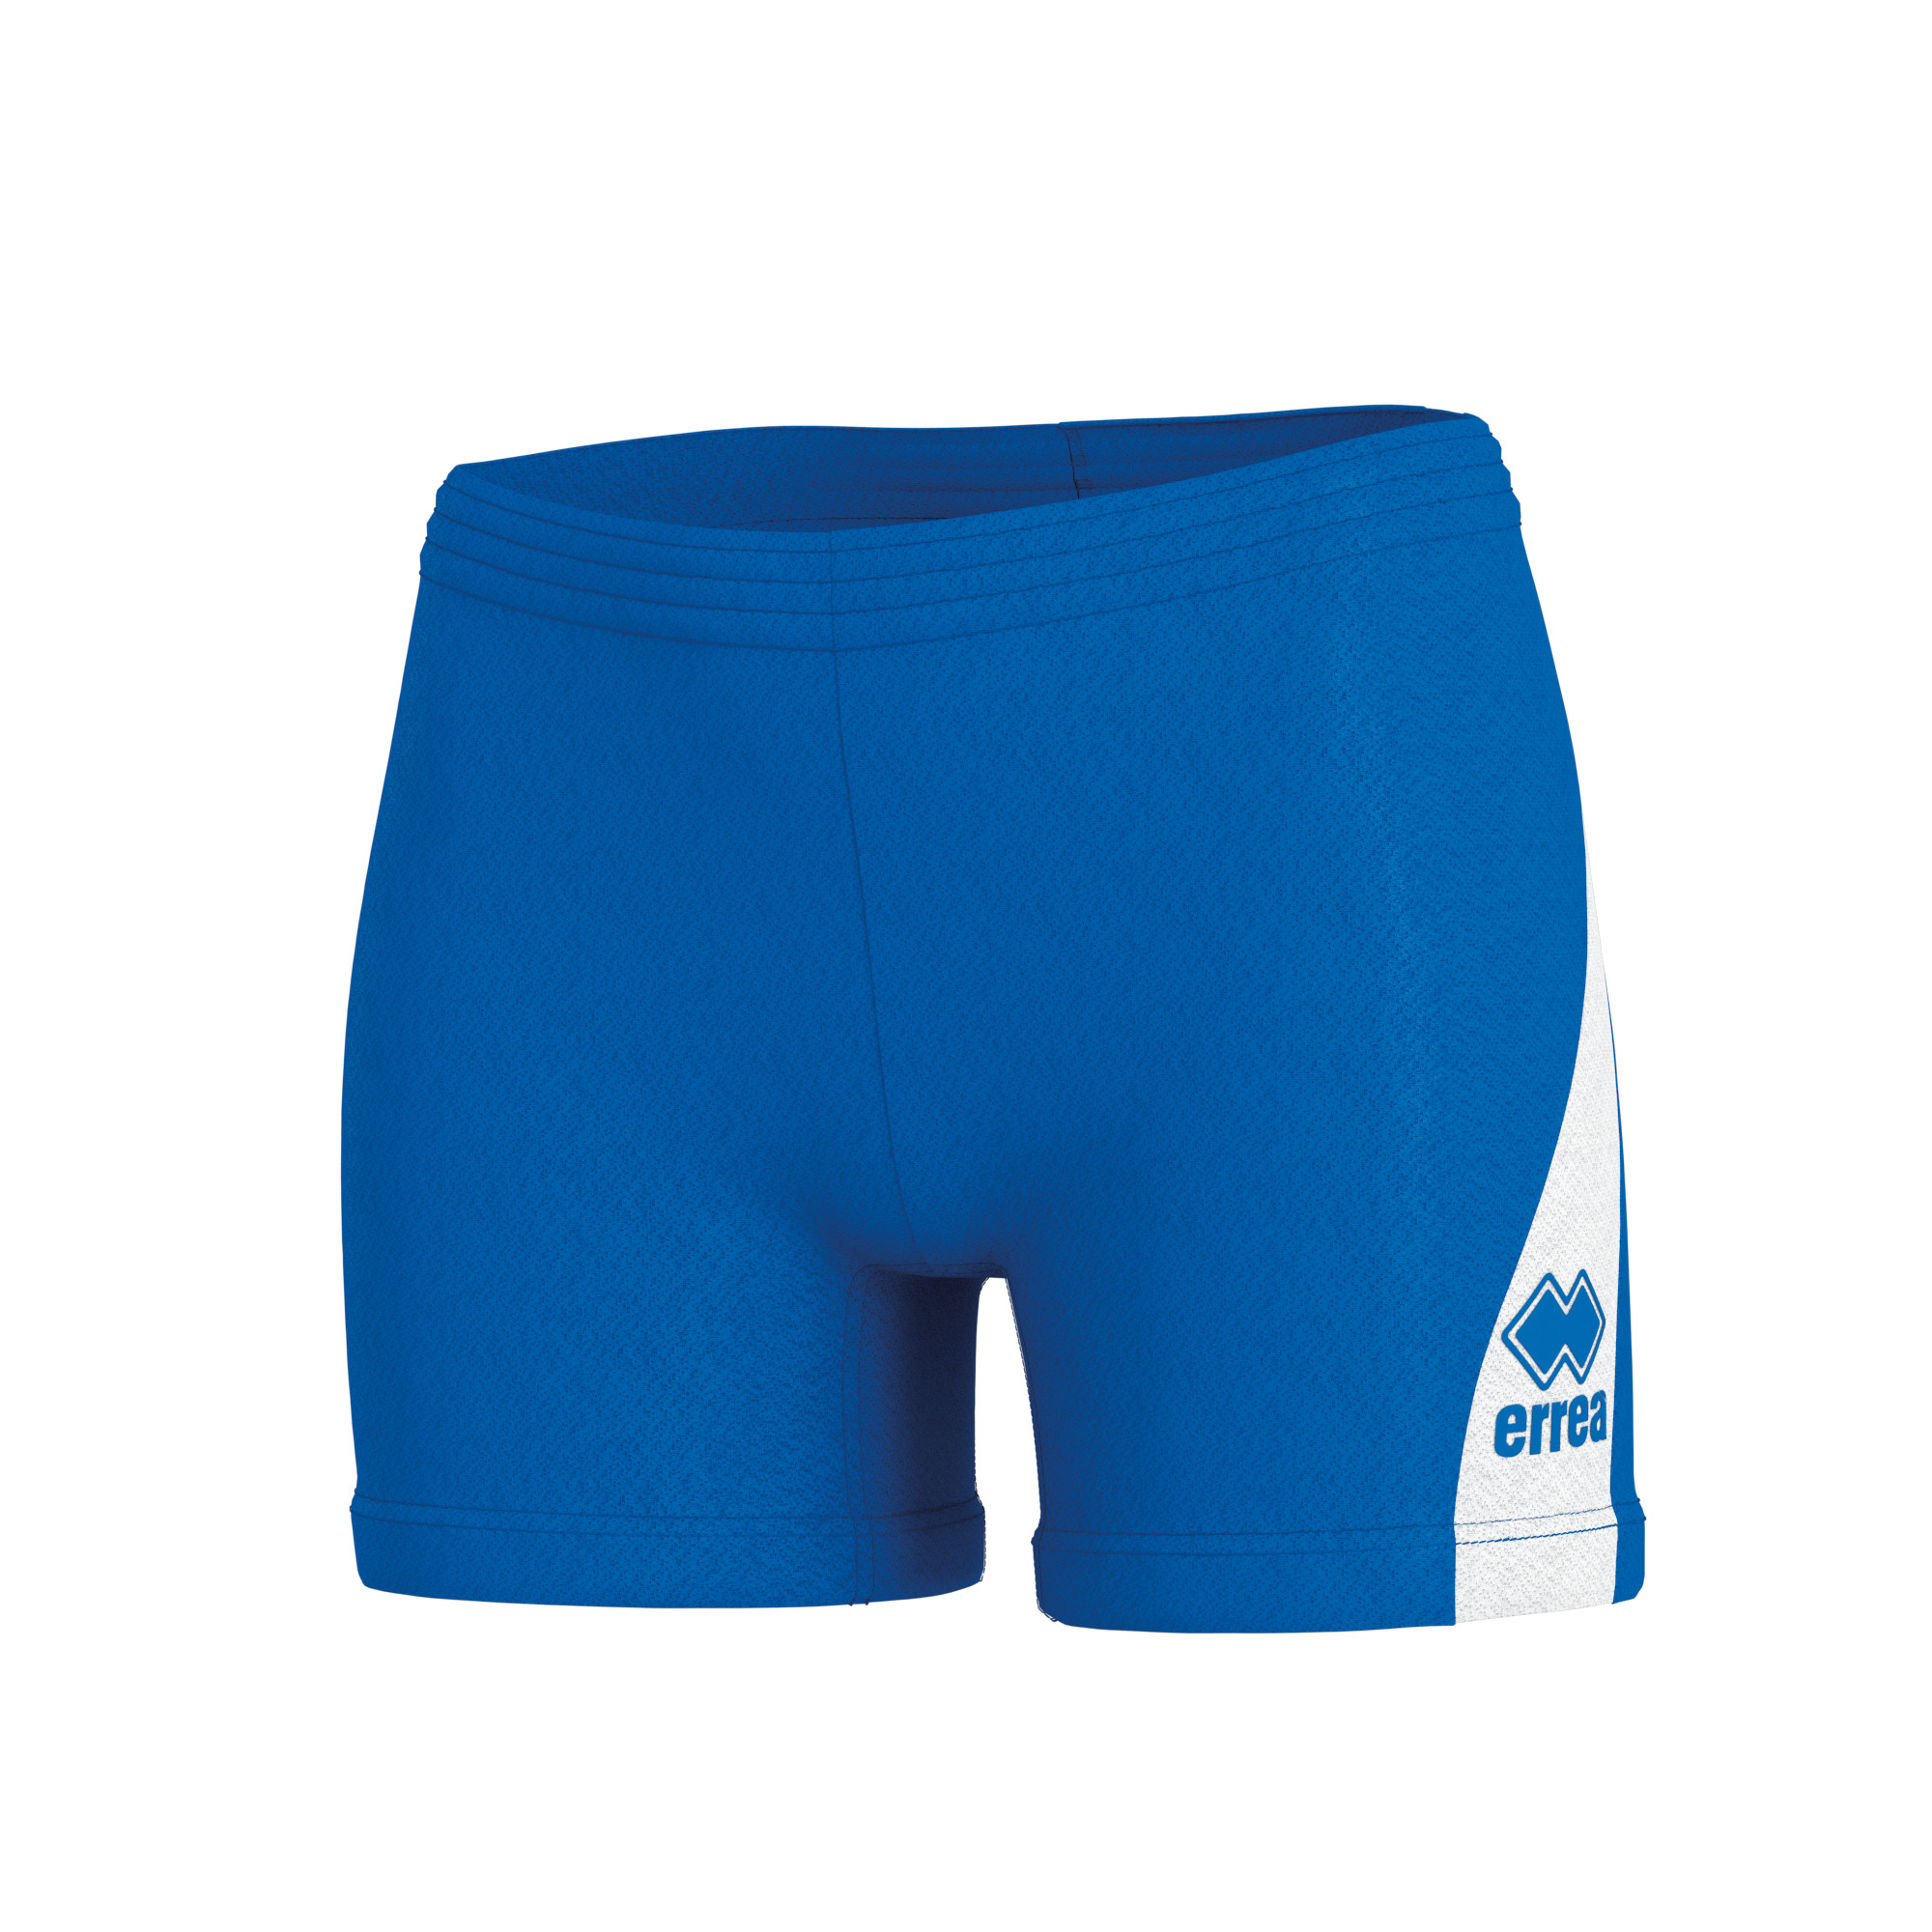 AMAZON 3.0 - WOMEN'S SHORTS JR